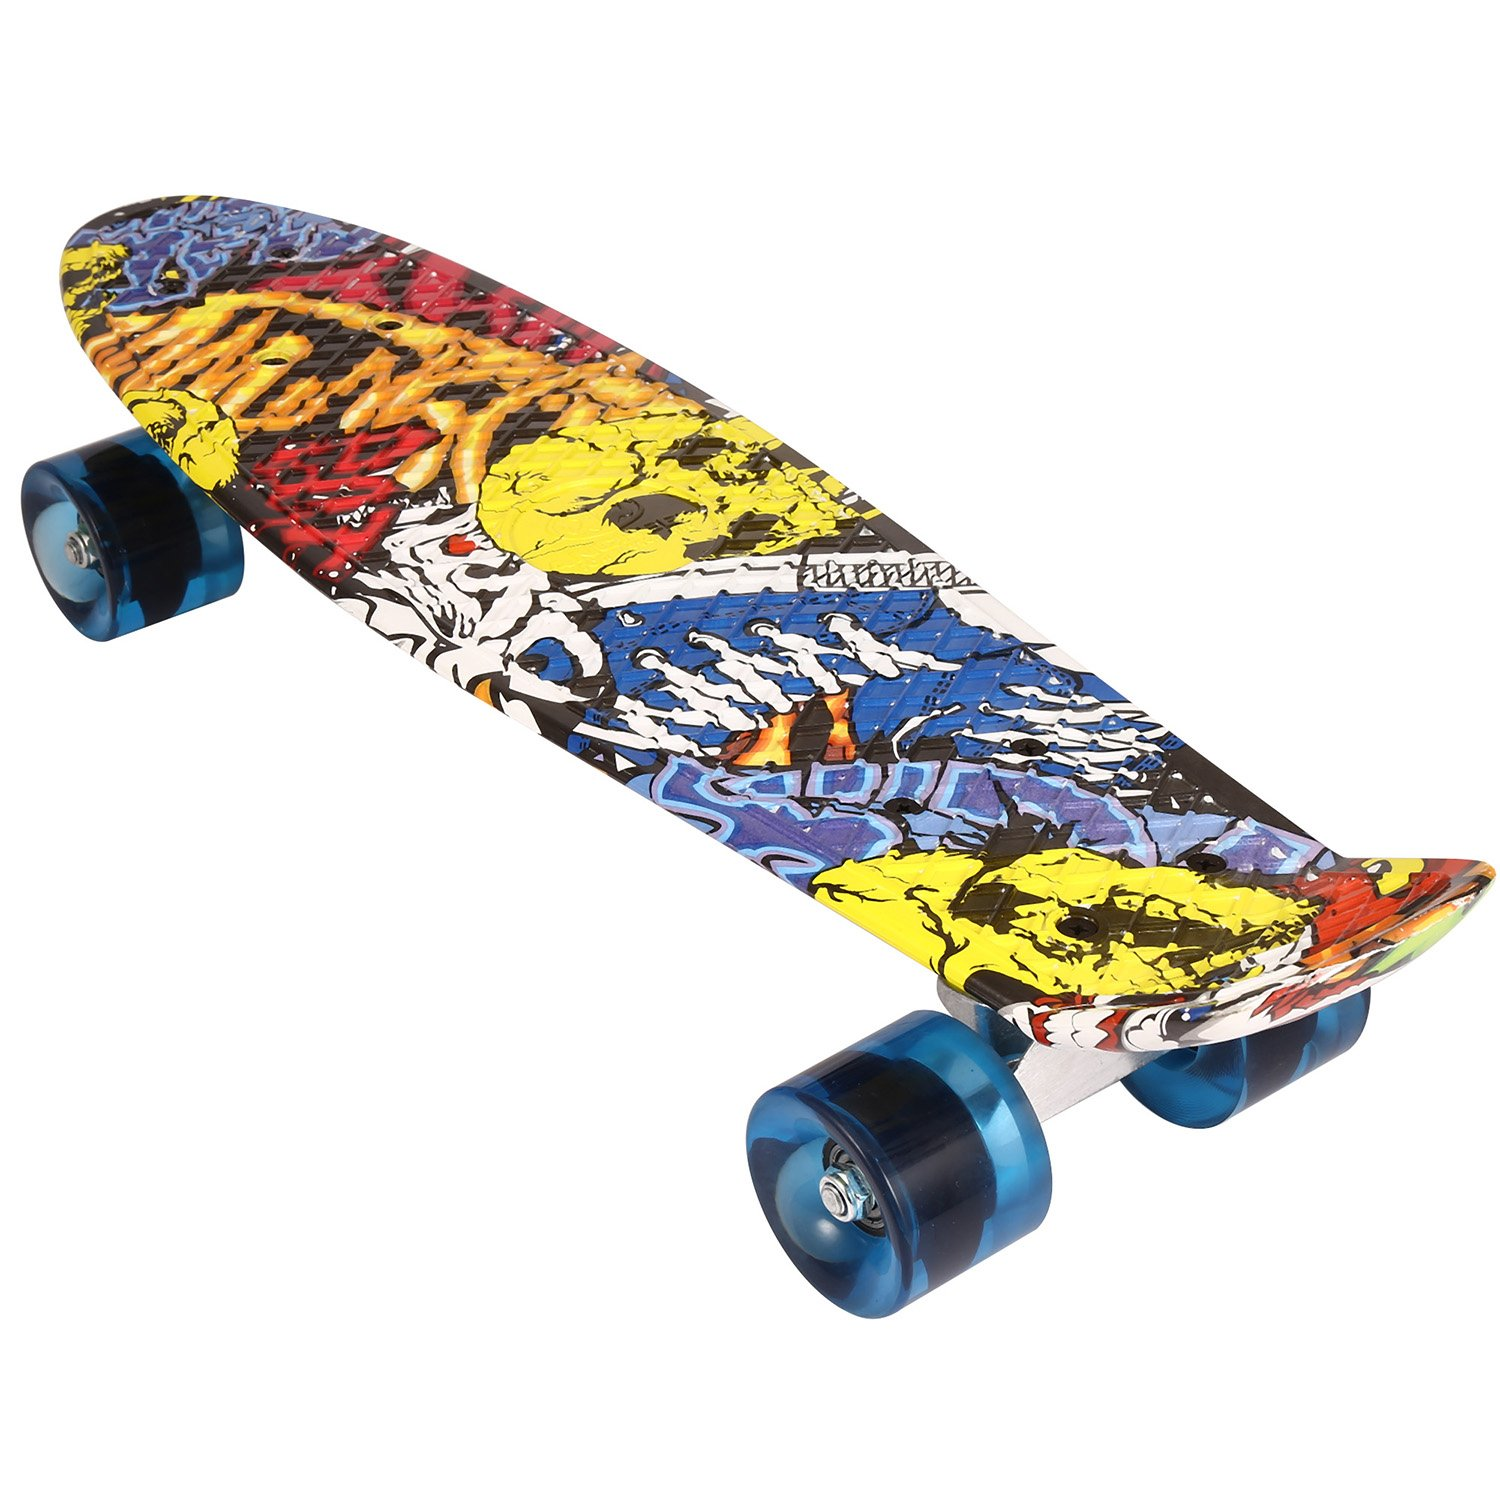 Ancheer 55cm gemustertes Skateboard Mini Cruiser Board Skateboard Kinder Retro Skateboard mit stabilen Deck 4 PU-Rollen(59mm), Retro Cruiser Skateboard, ABEC-9 Kugellager